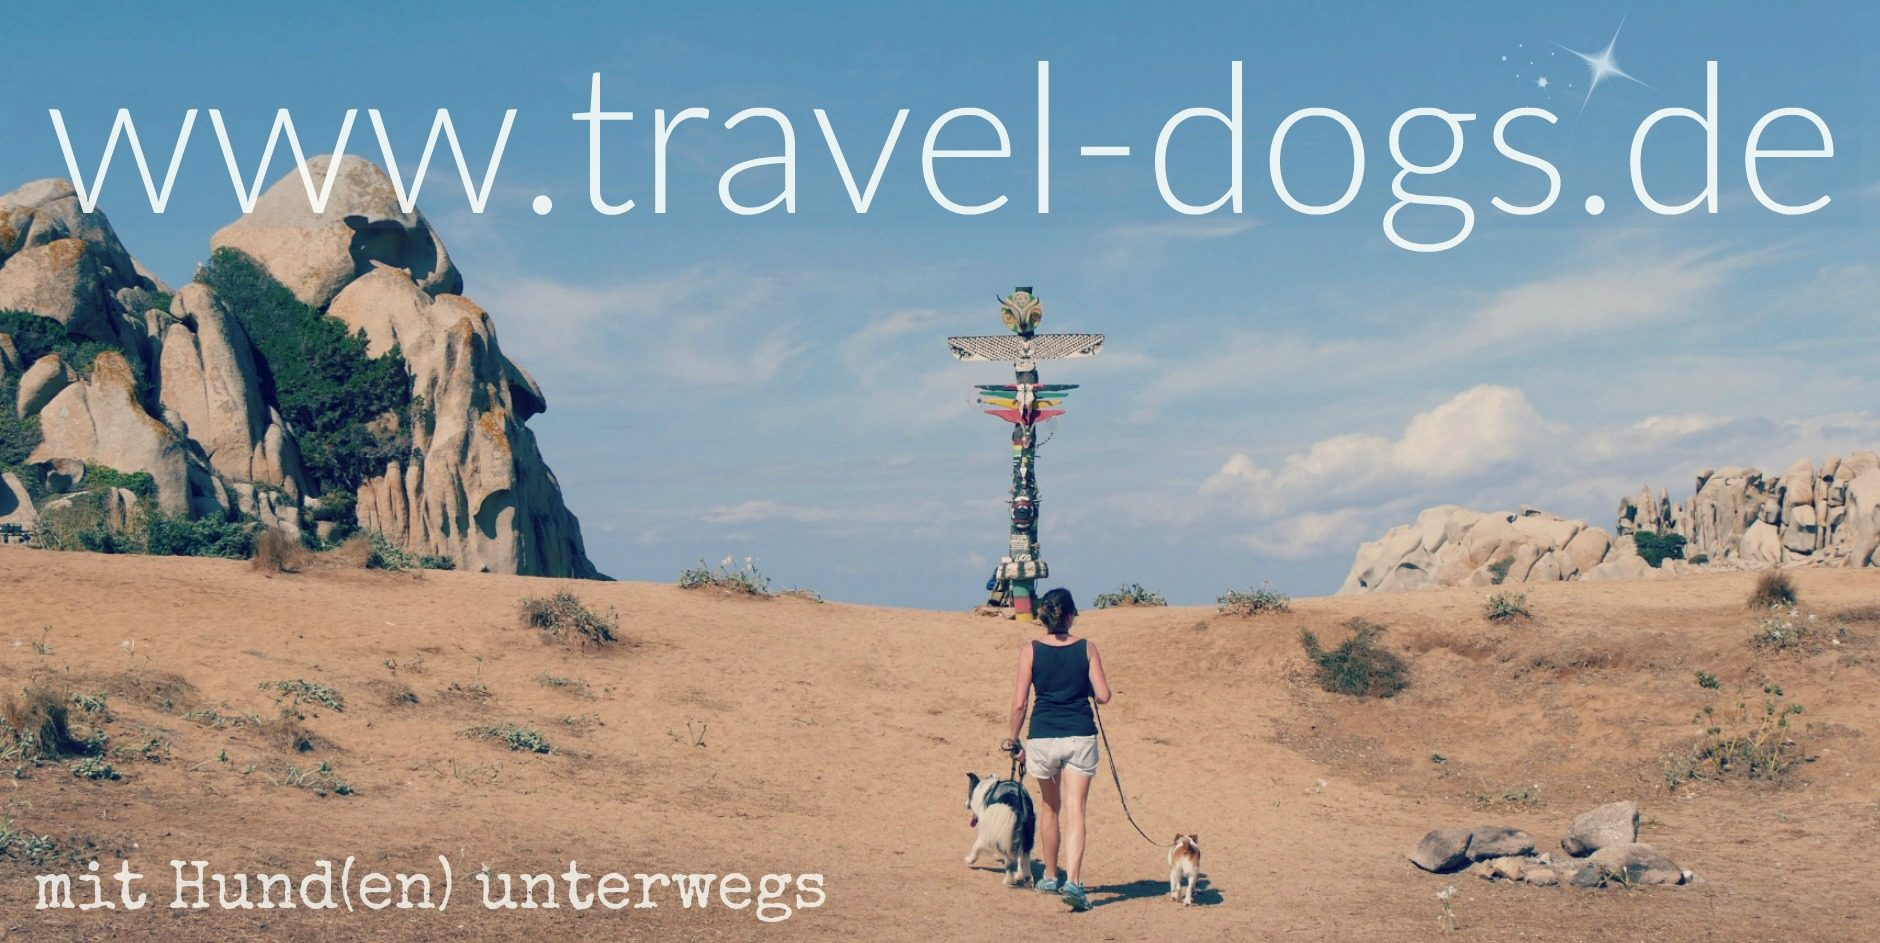 travel-dogs.de